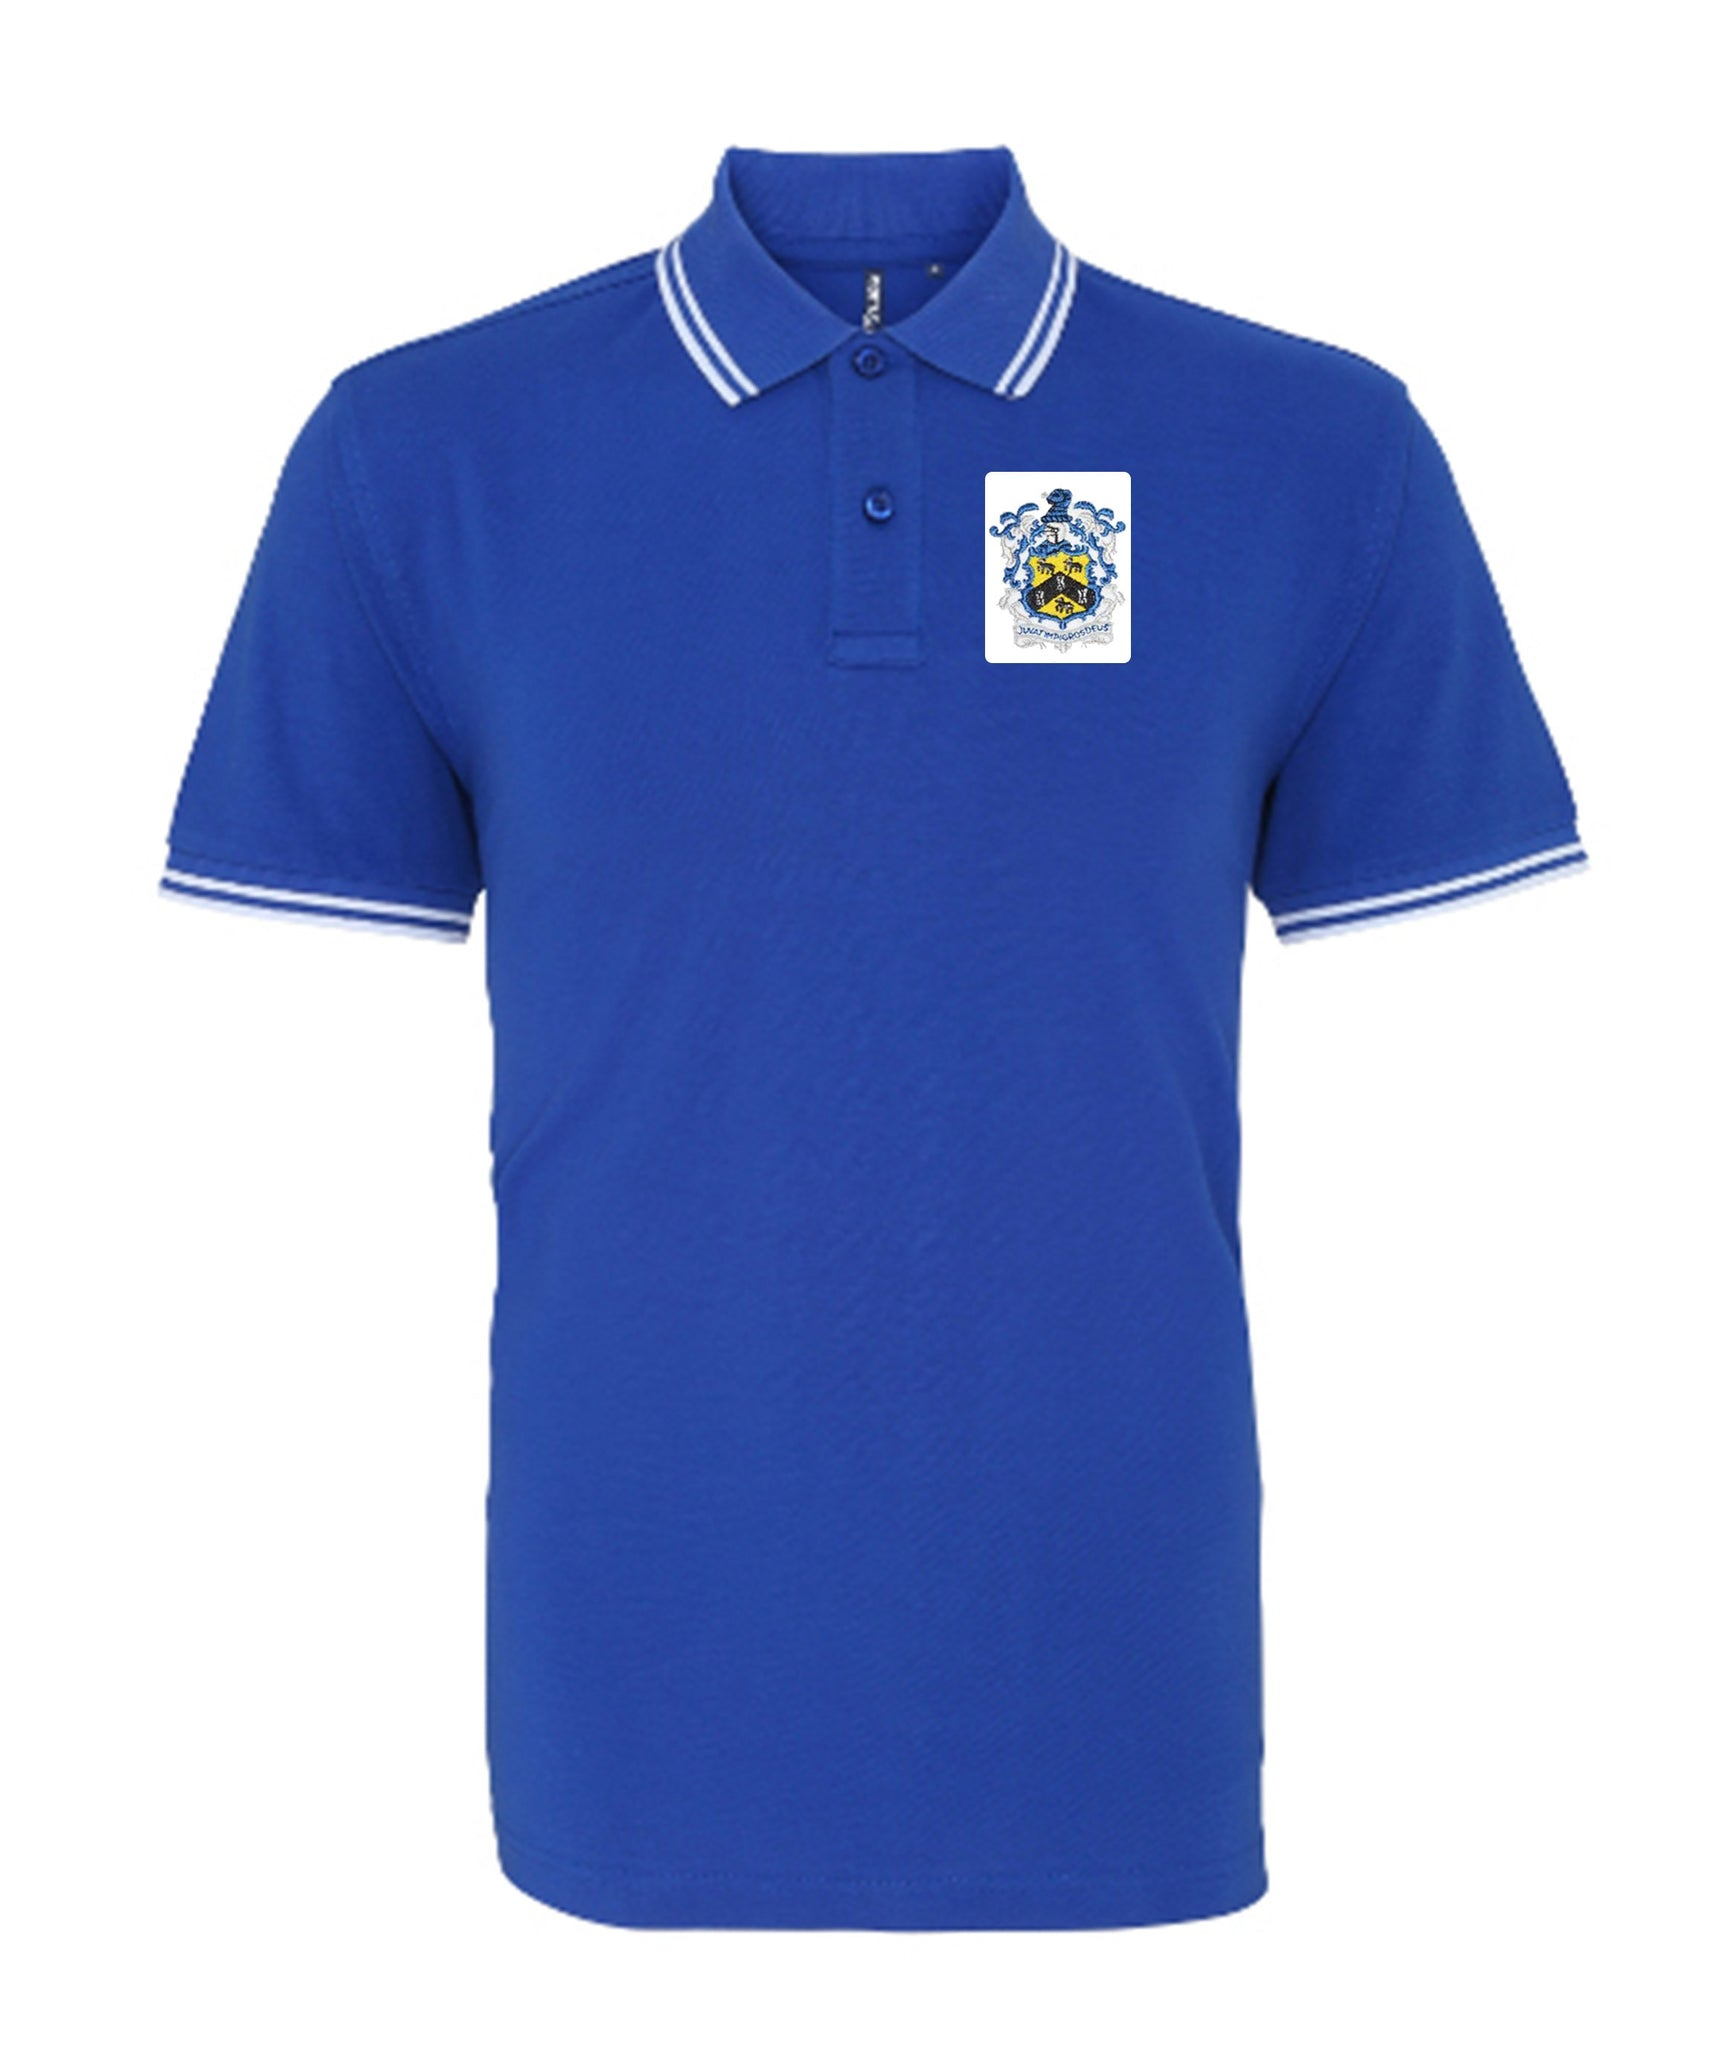 Huddersfield Town Retro Football Iconic Polo 1950s - Polo